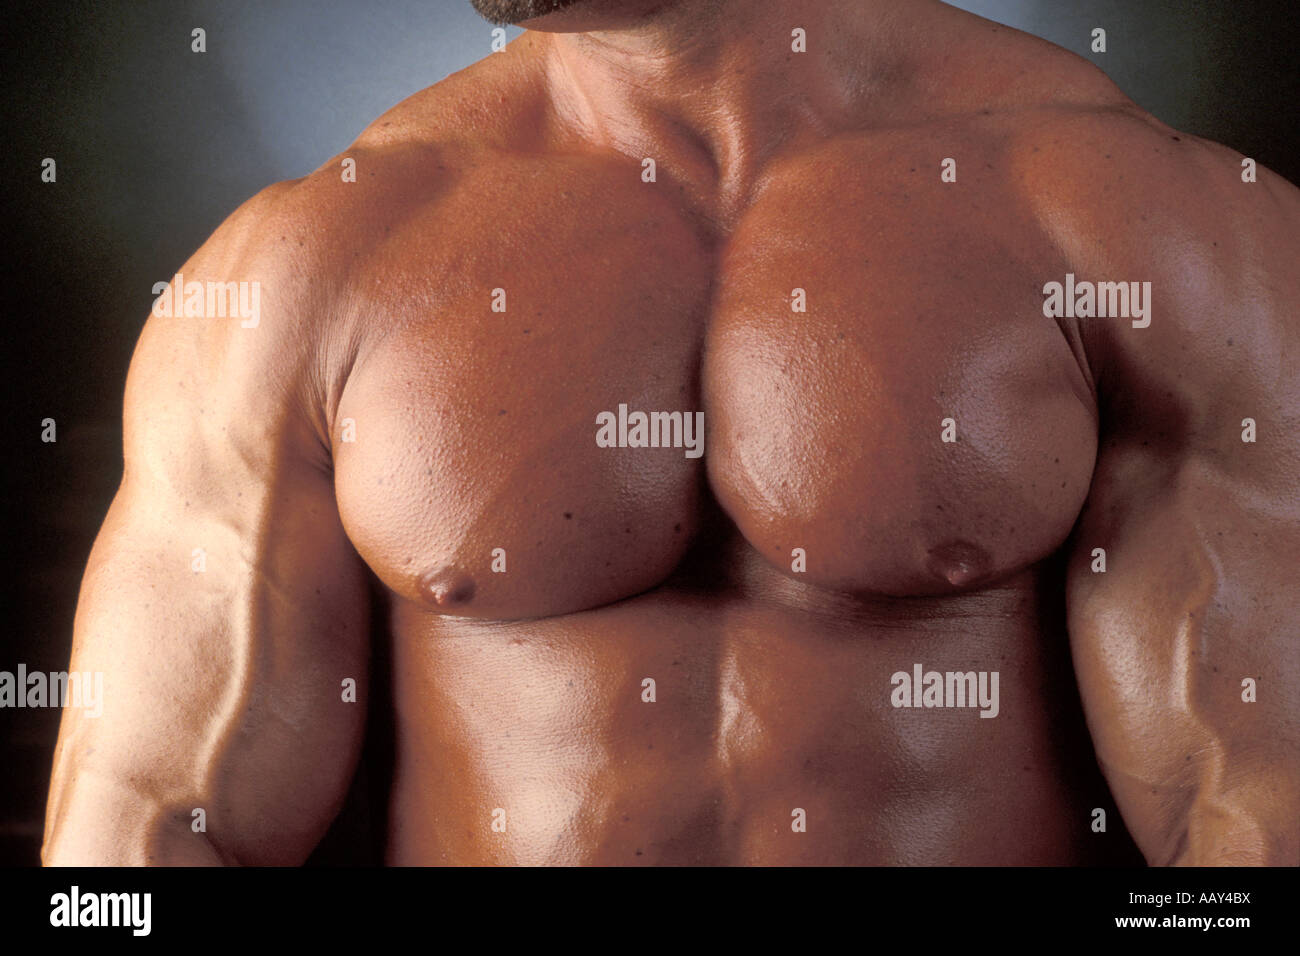 Muscular Muscle Man With Big Bulging Pectorial Muscles And Chest